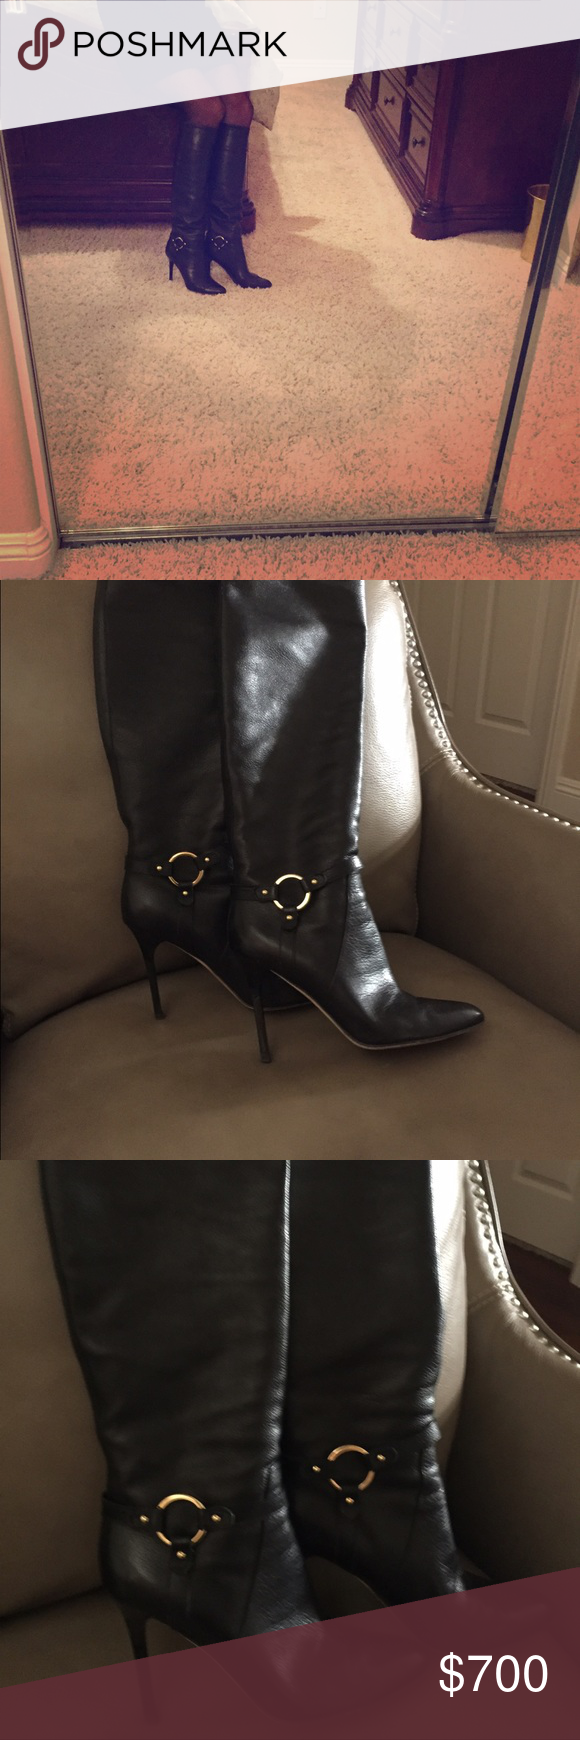 Jimmy Choo leather knee high buckle boot Almost new Jimmy Choo buckle boot Jimmy Choo Shoes Heeled Boots